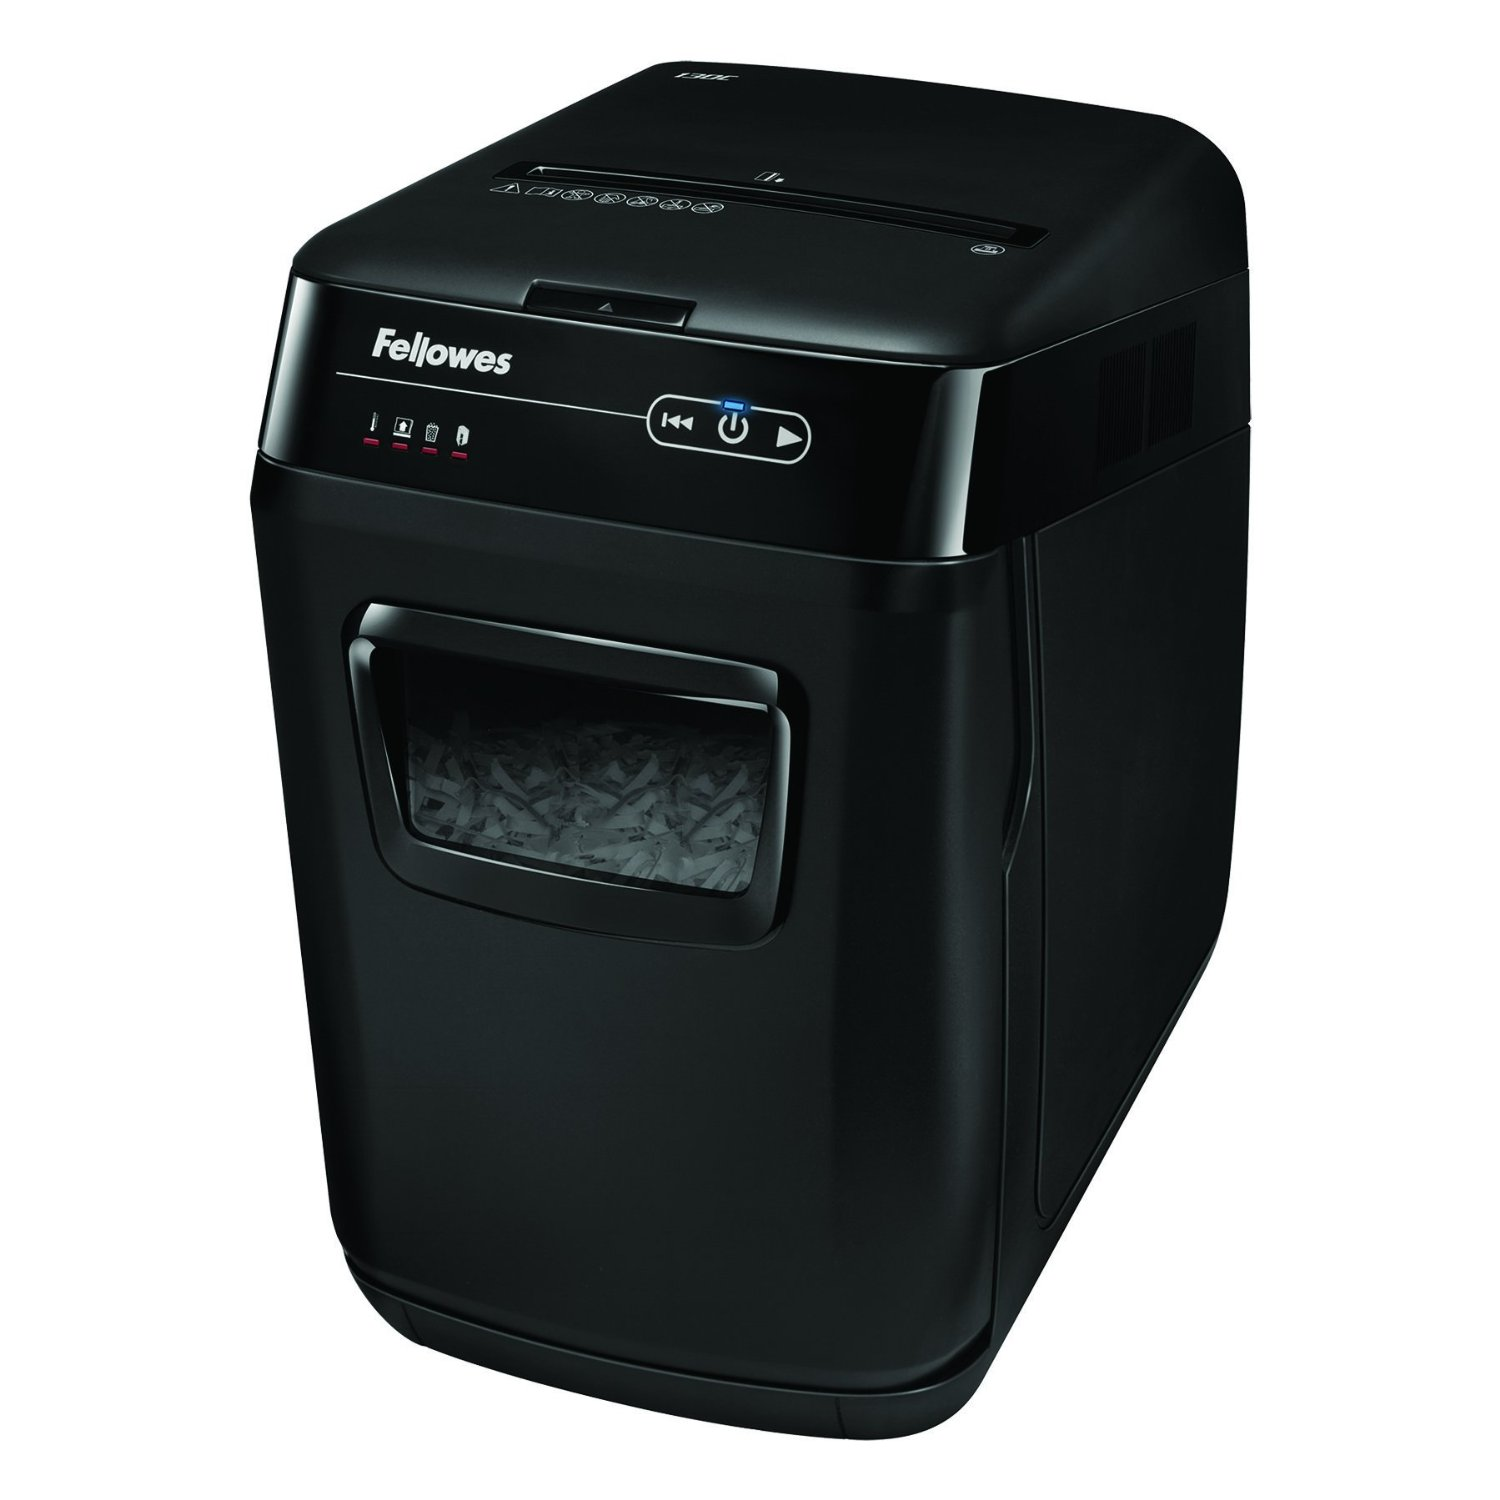 Шредер Fellowes AutoMax 200C fellowes automax 200c 4x38 мм